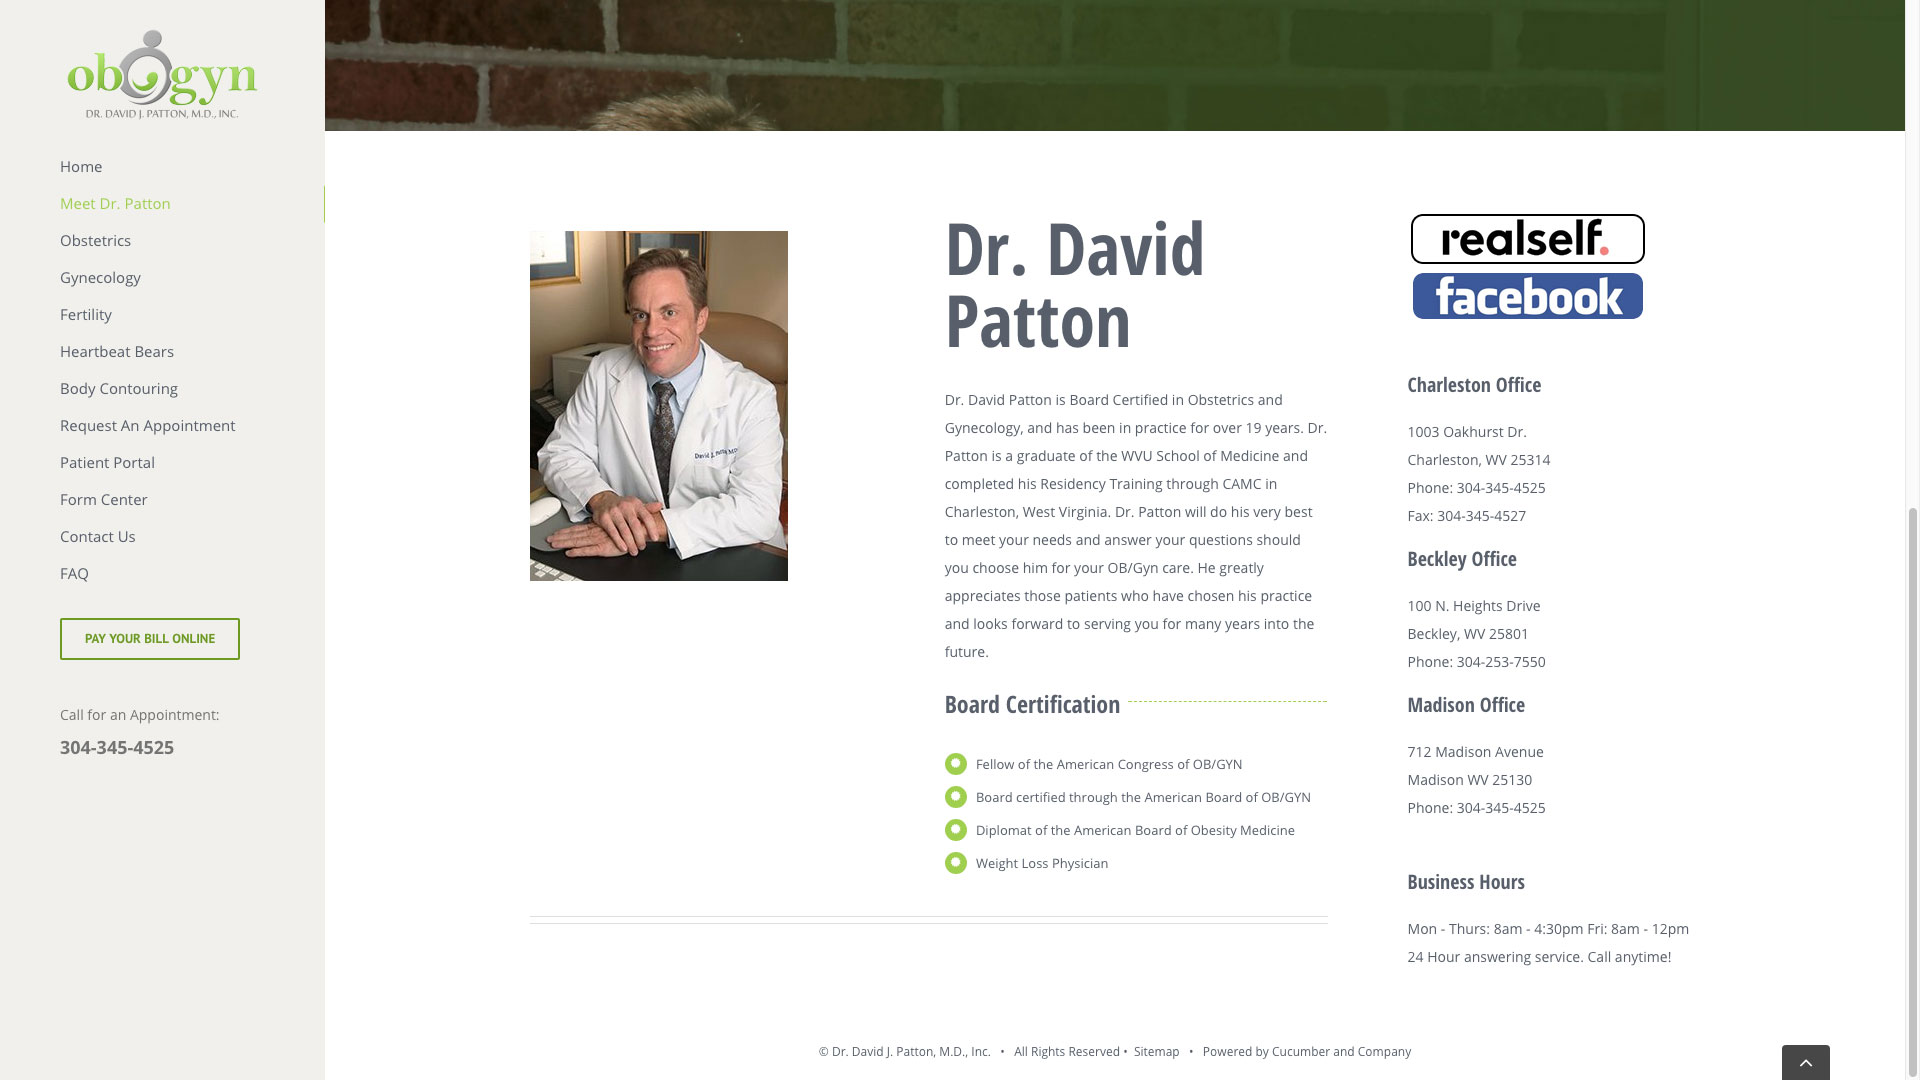 Dr. Patton OBGYN Website Biography Cucumber & Company Web Design Beckley, WV